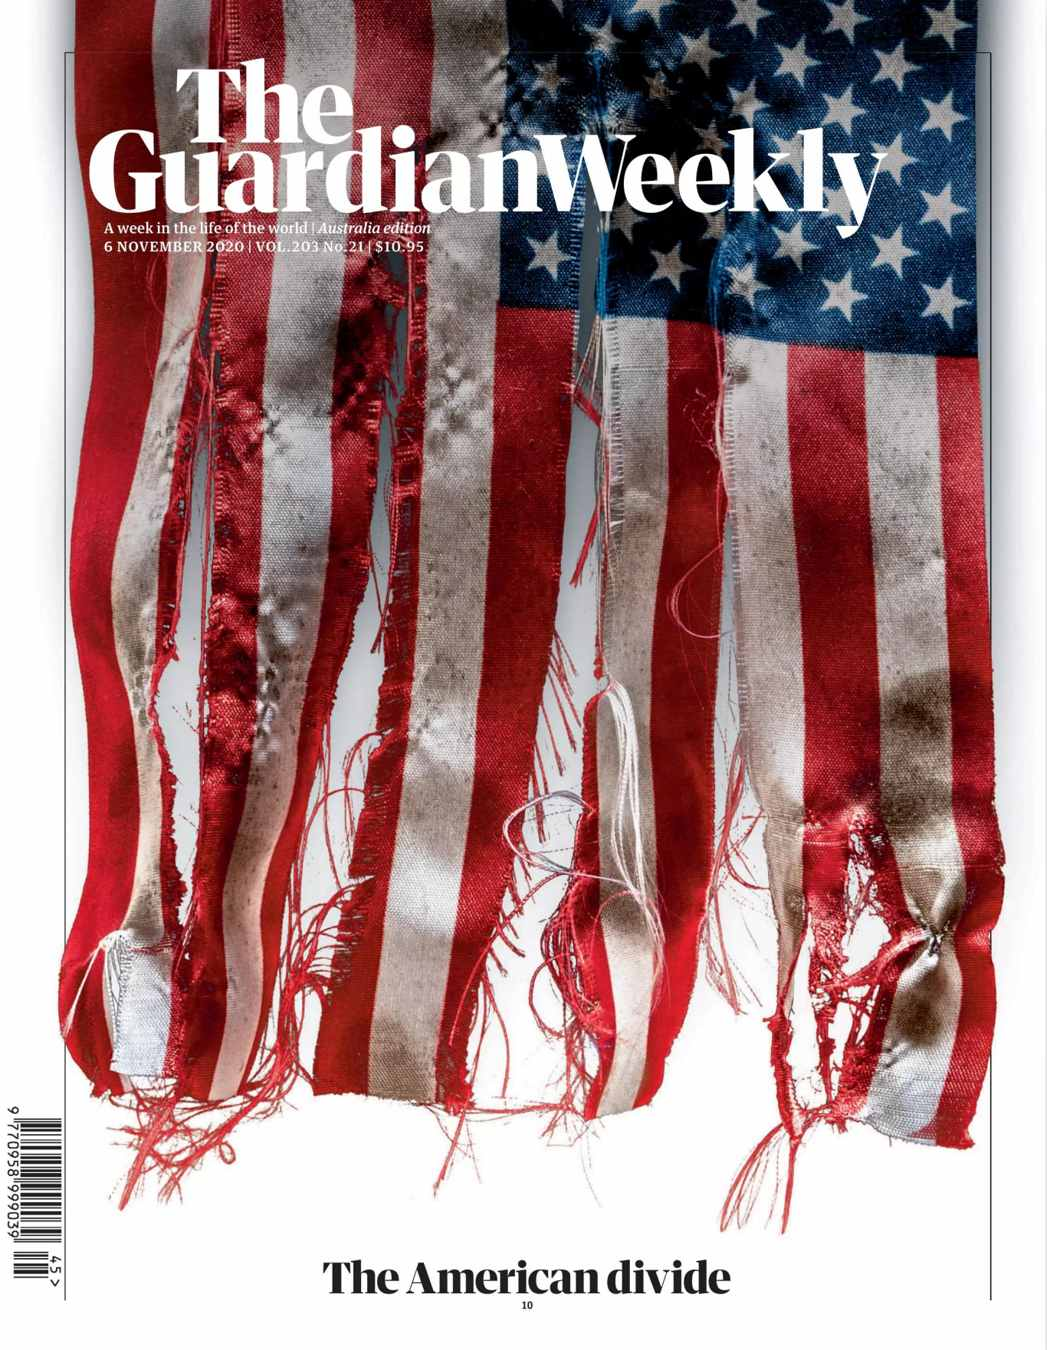 guardian weekly cover about US election